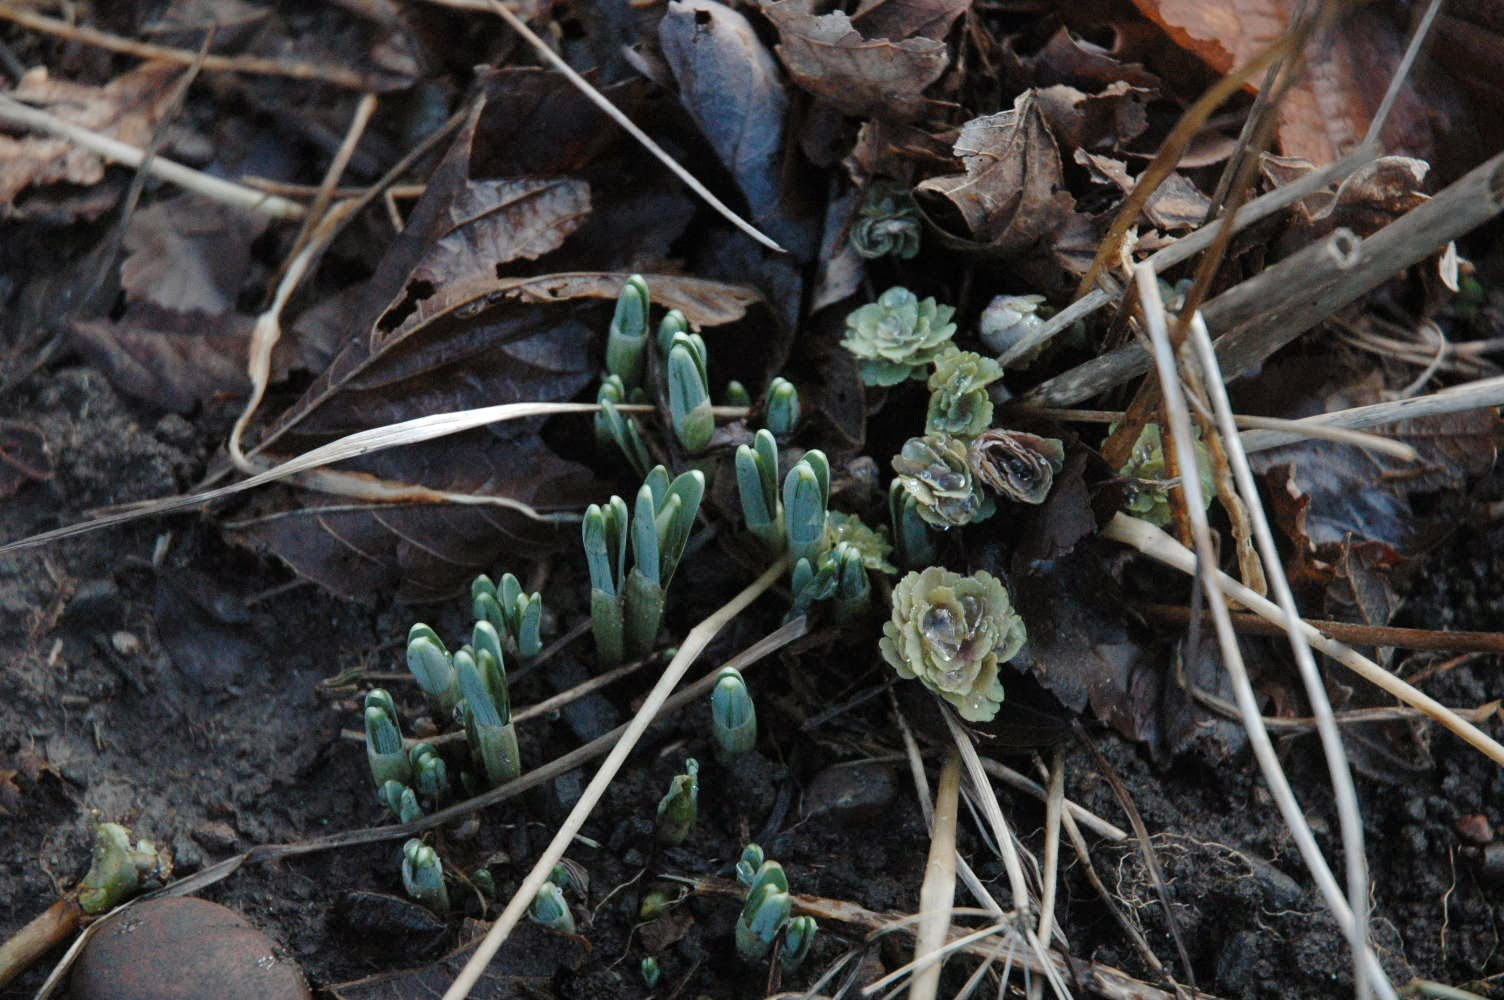 Emerging bulbs and new aquilegia foliage are welcome signs of regrowth